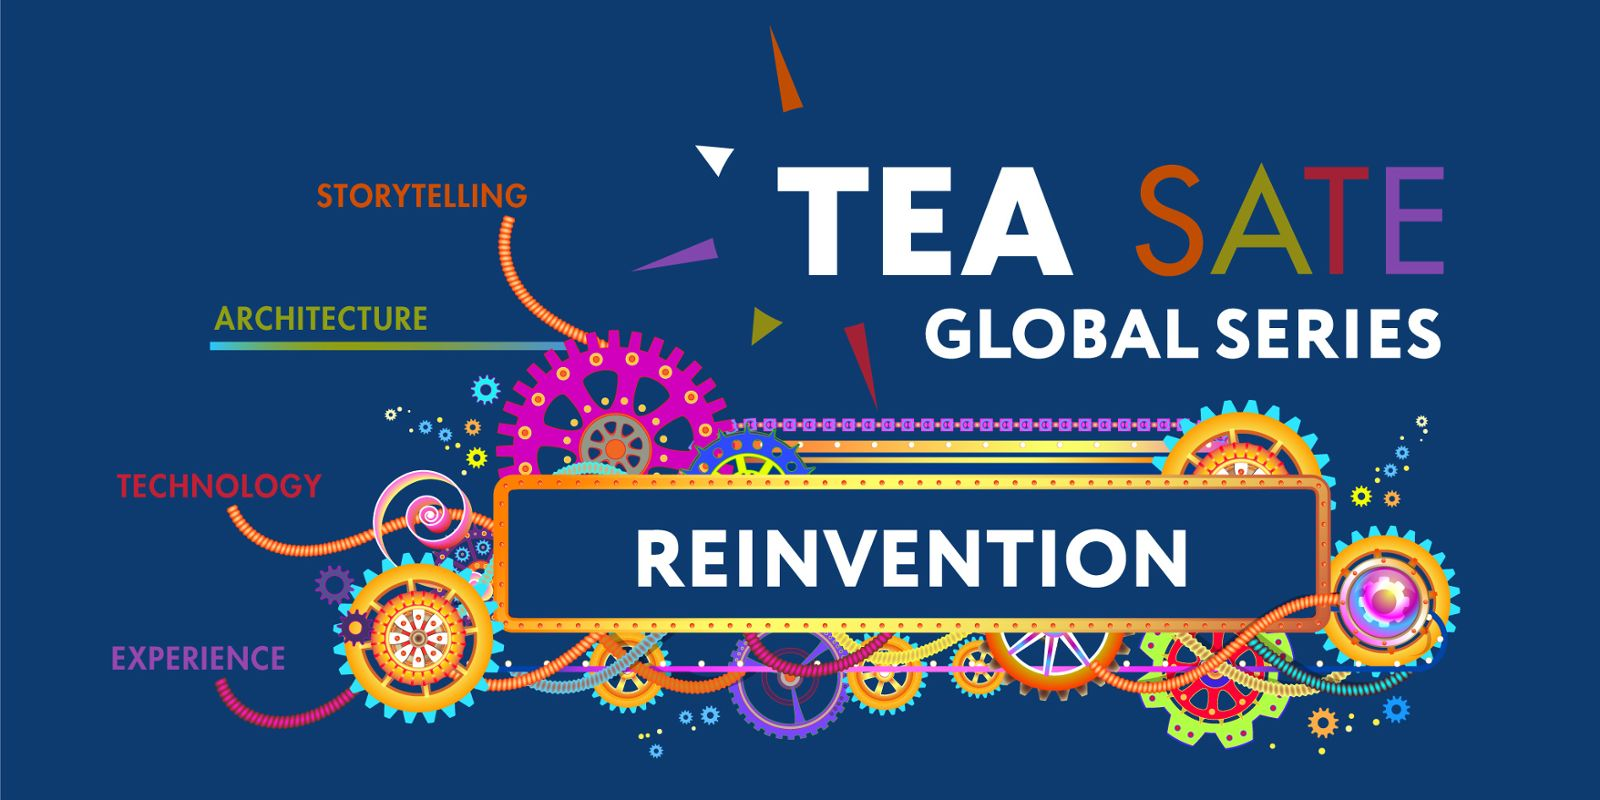 Episode 3 + 4 Speakers Announced for TEA SATE Global Series: REINVENTION presented by The Hettema Group